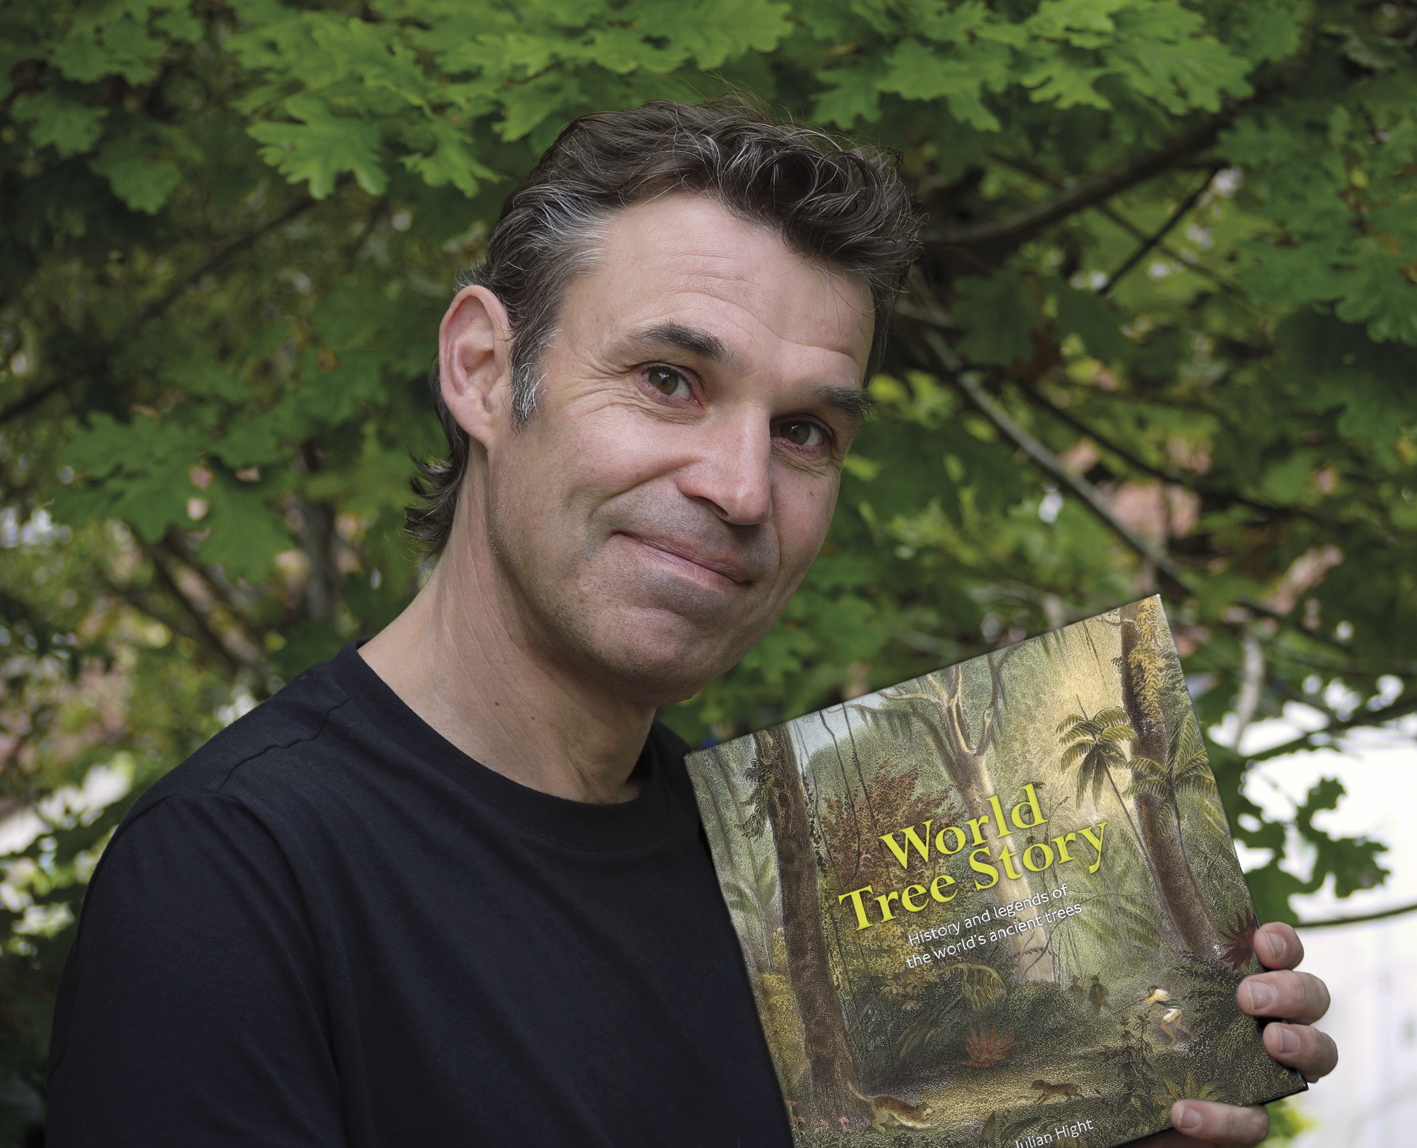 World Tree Story - history & legends of the world's ancient trees - illustrated talk by Julian hight